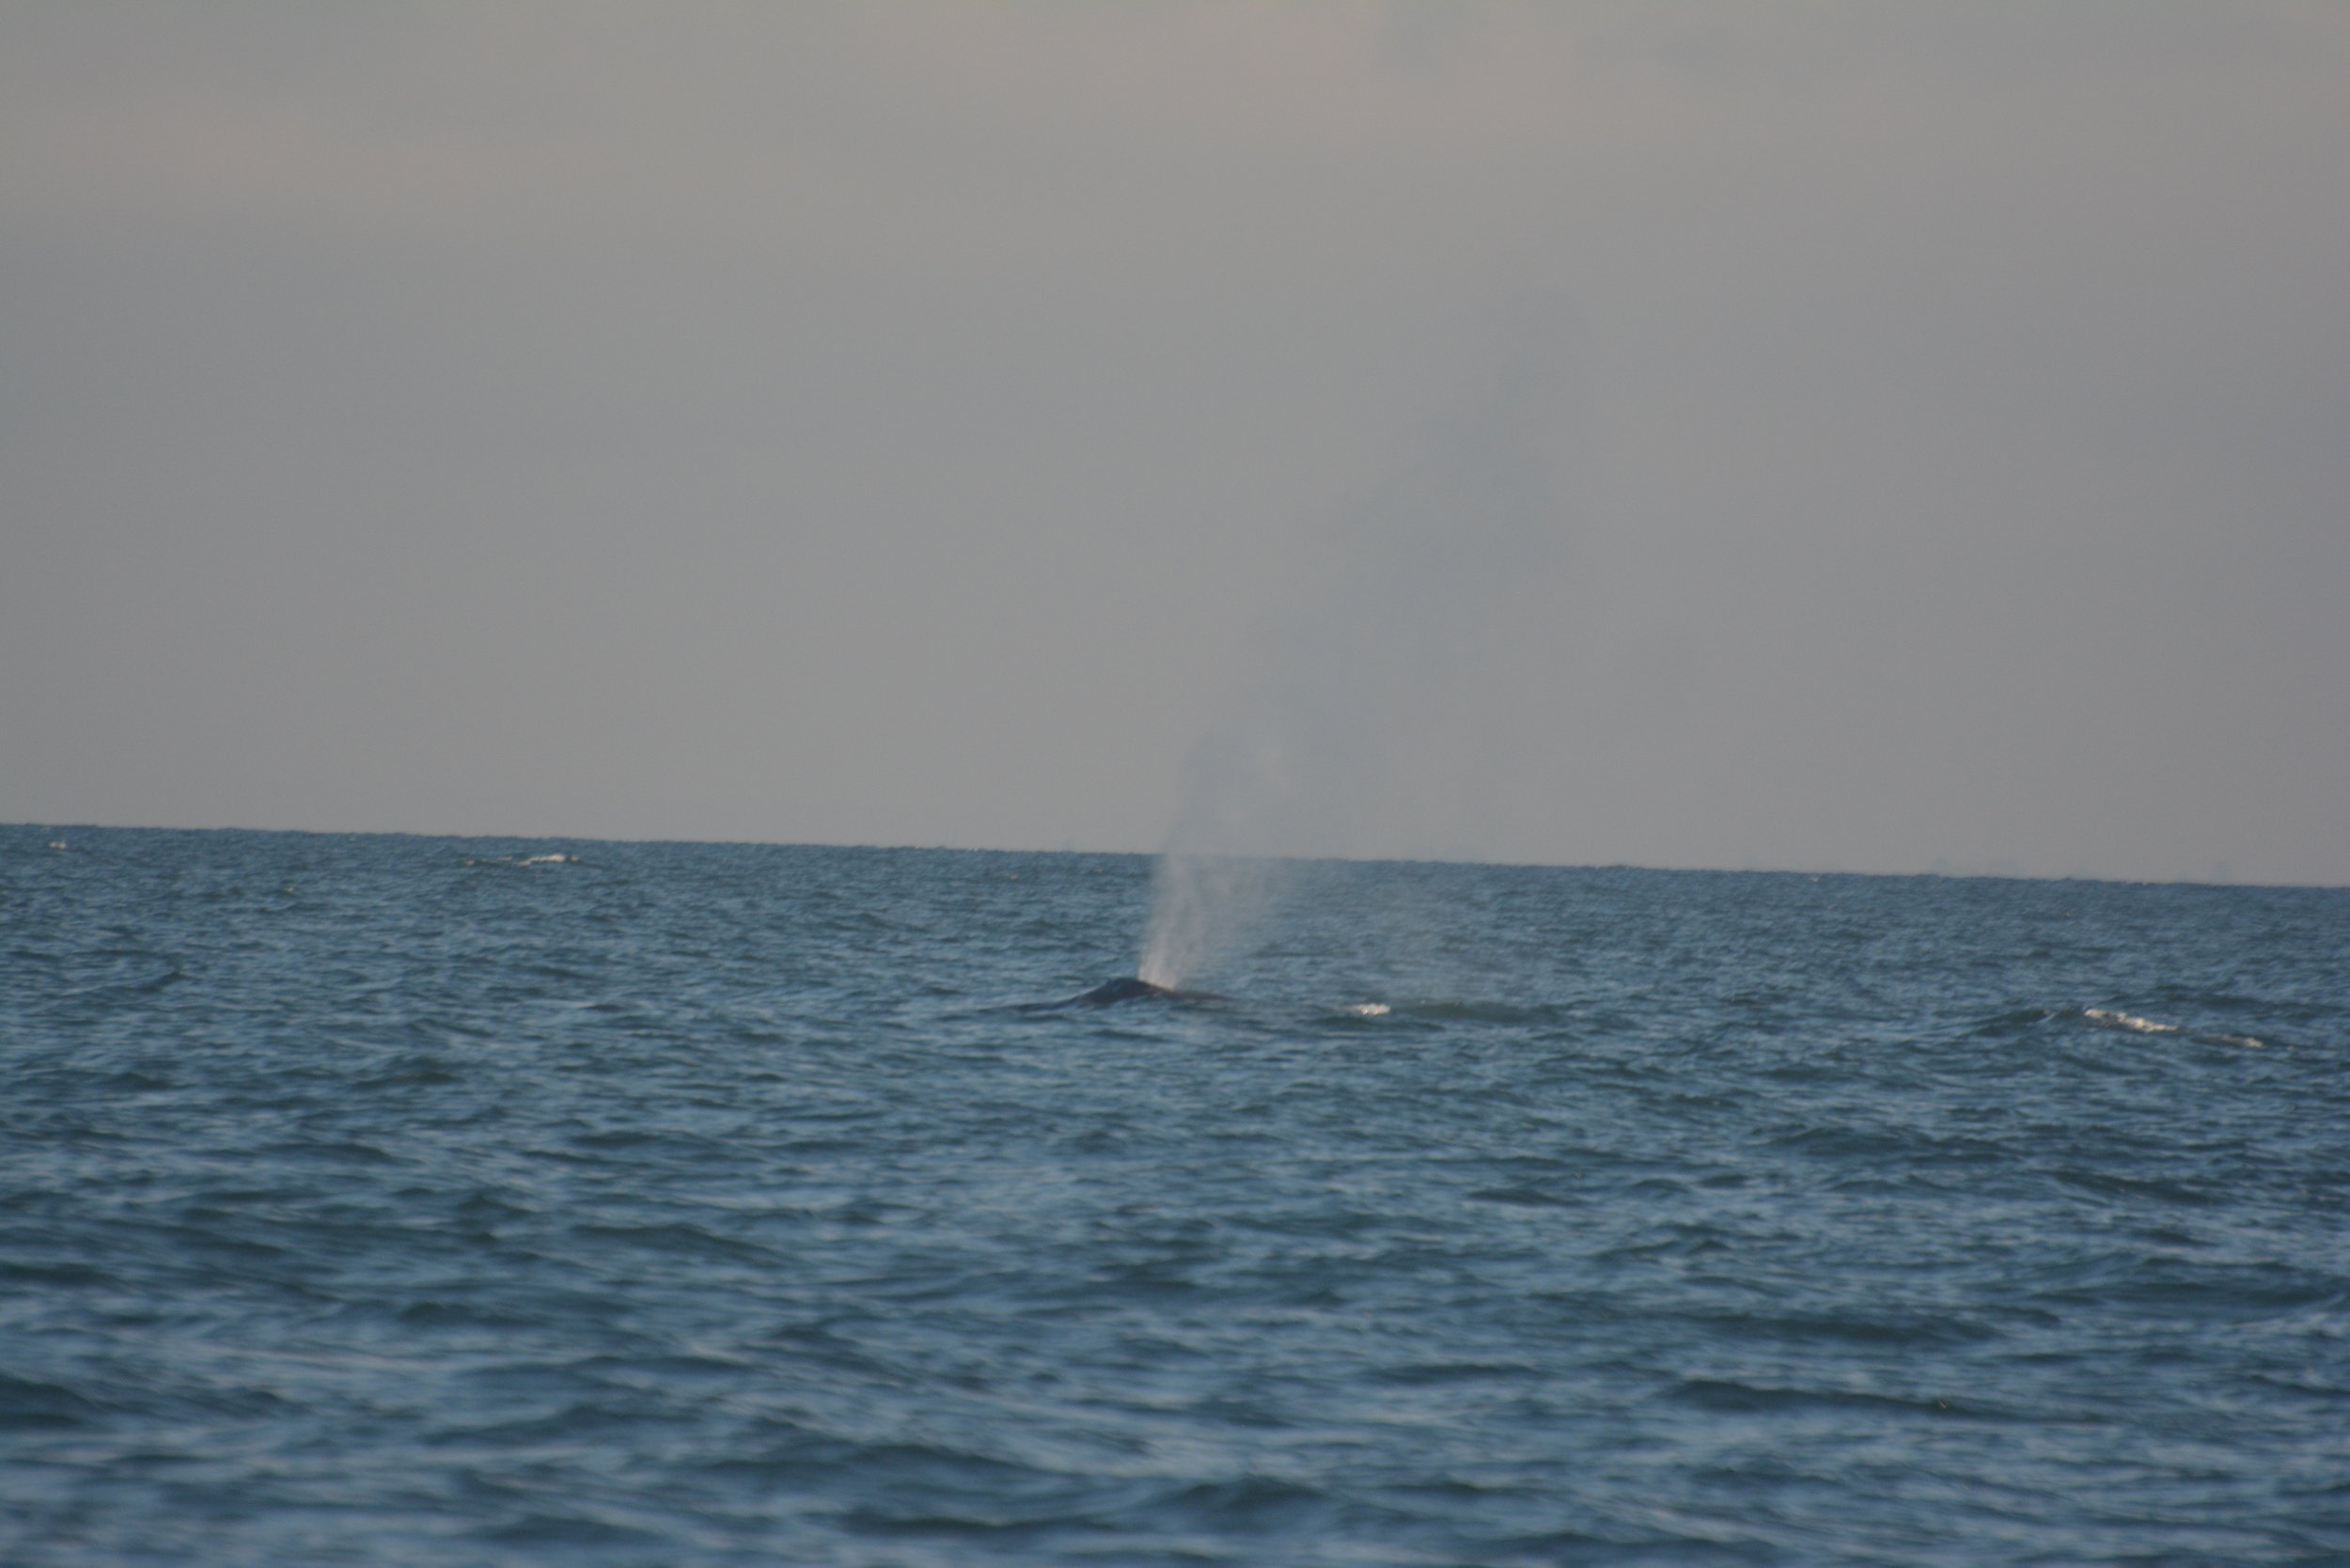 Thar she blows! A humpback's blow can reach up to 15ft in the air, and this is often how we find them. Photo by Val Watson